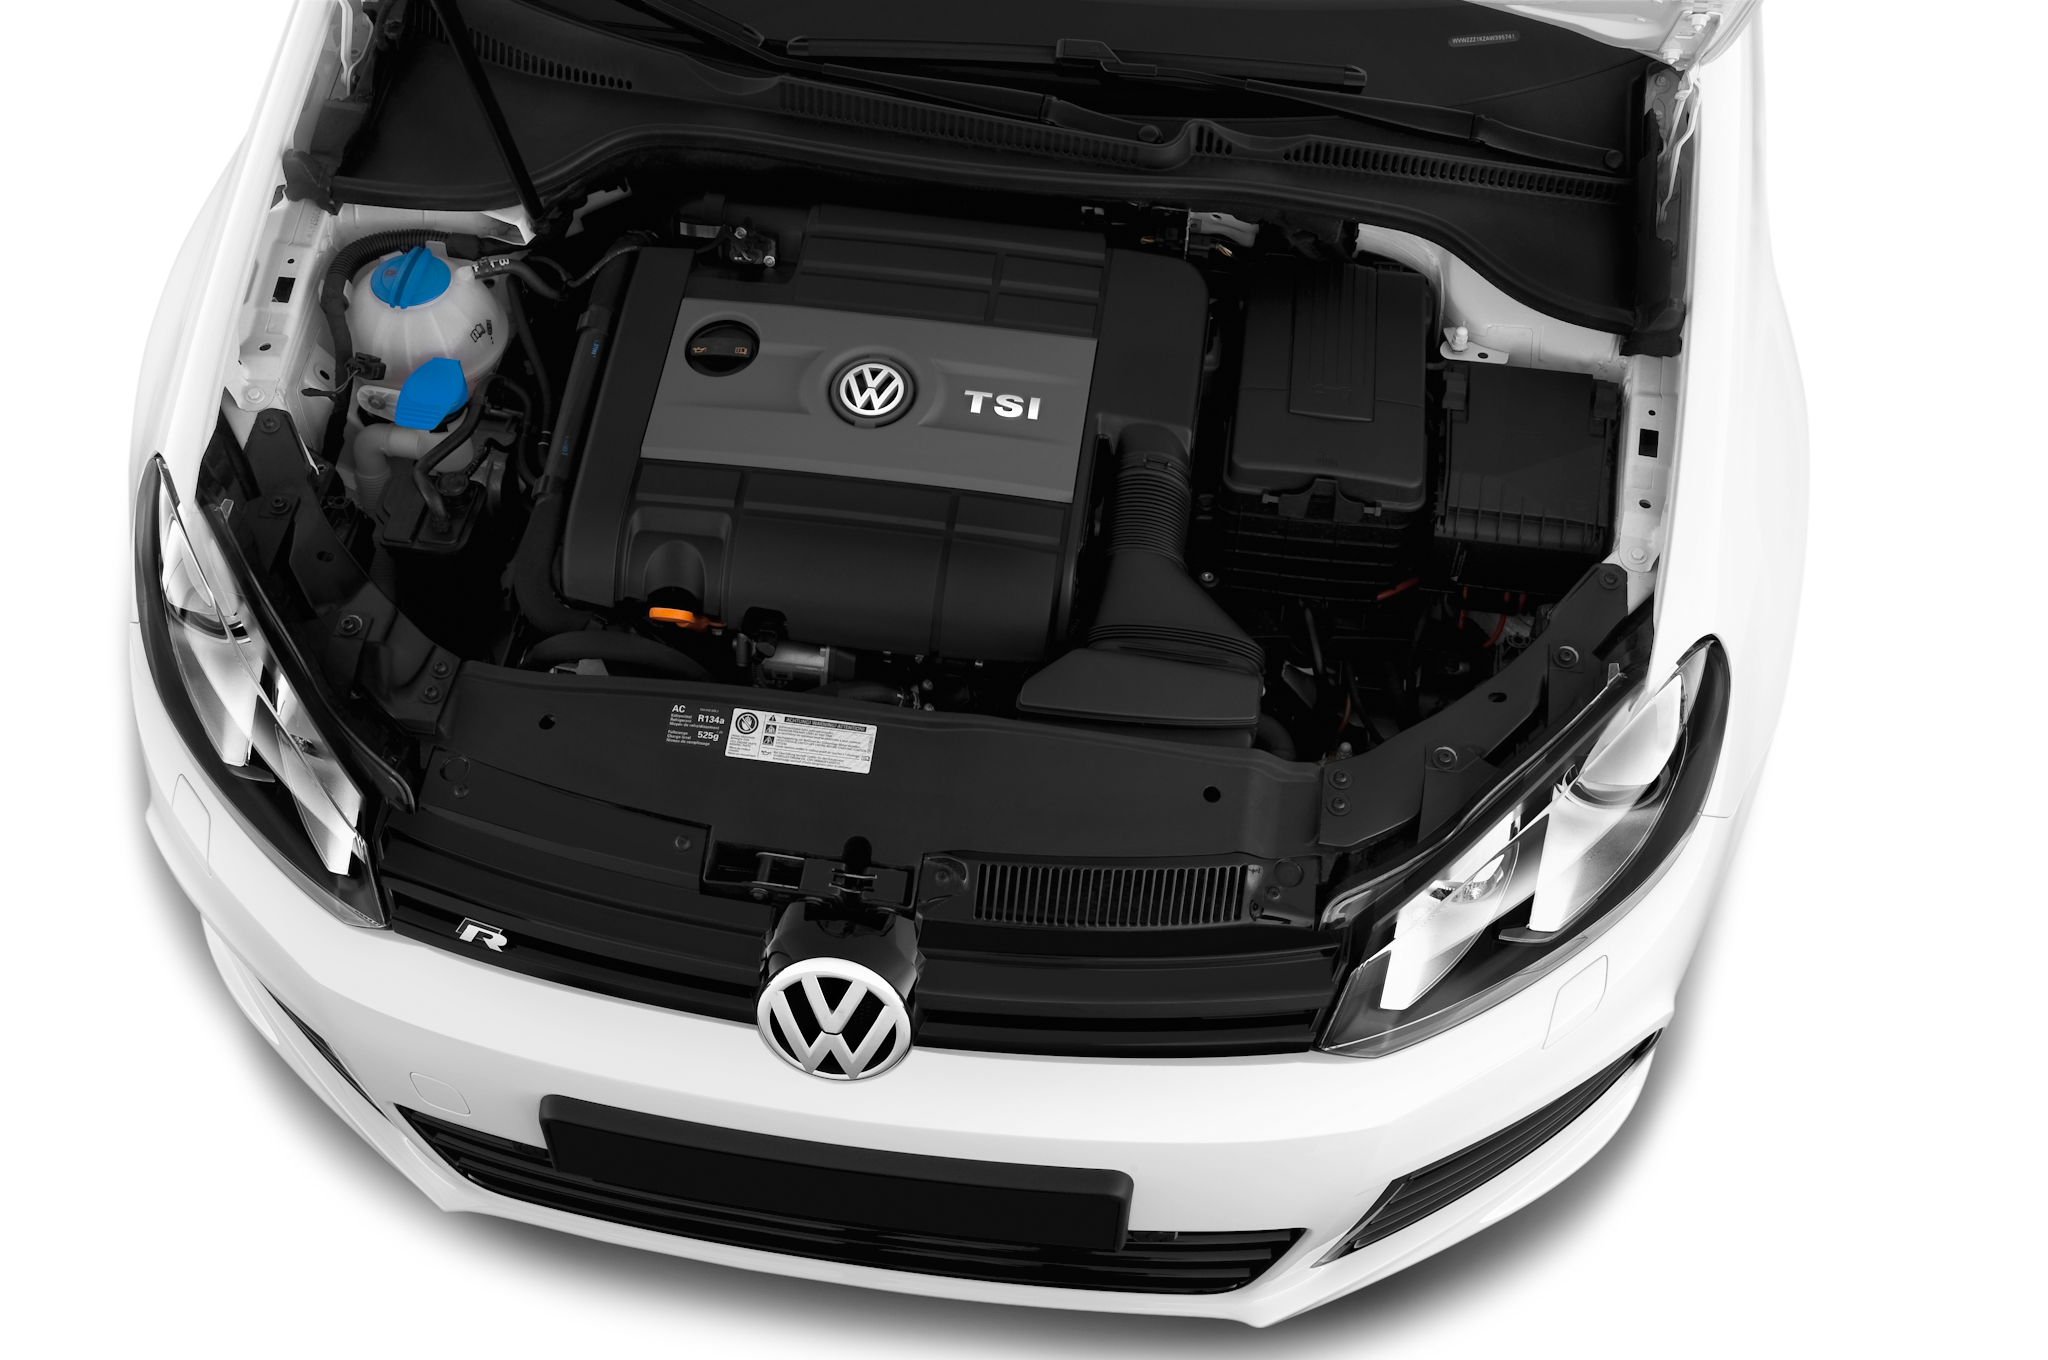 feature flick: 2012 volkswagen golf r tested – worthy of the